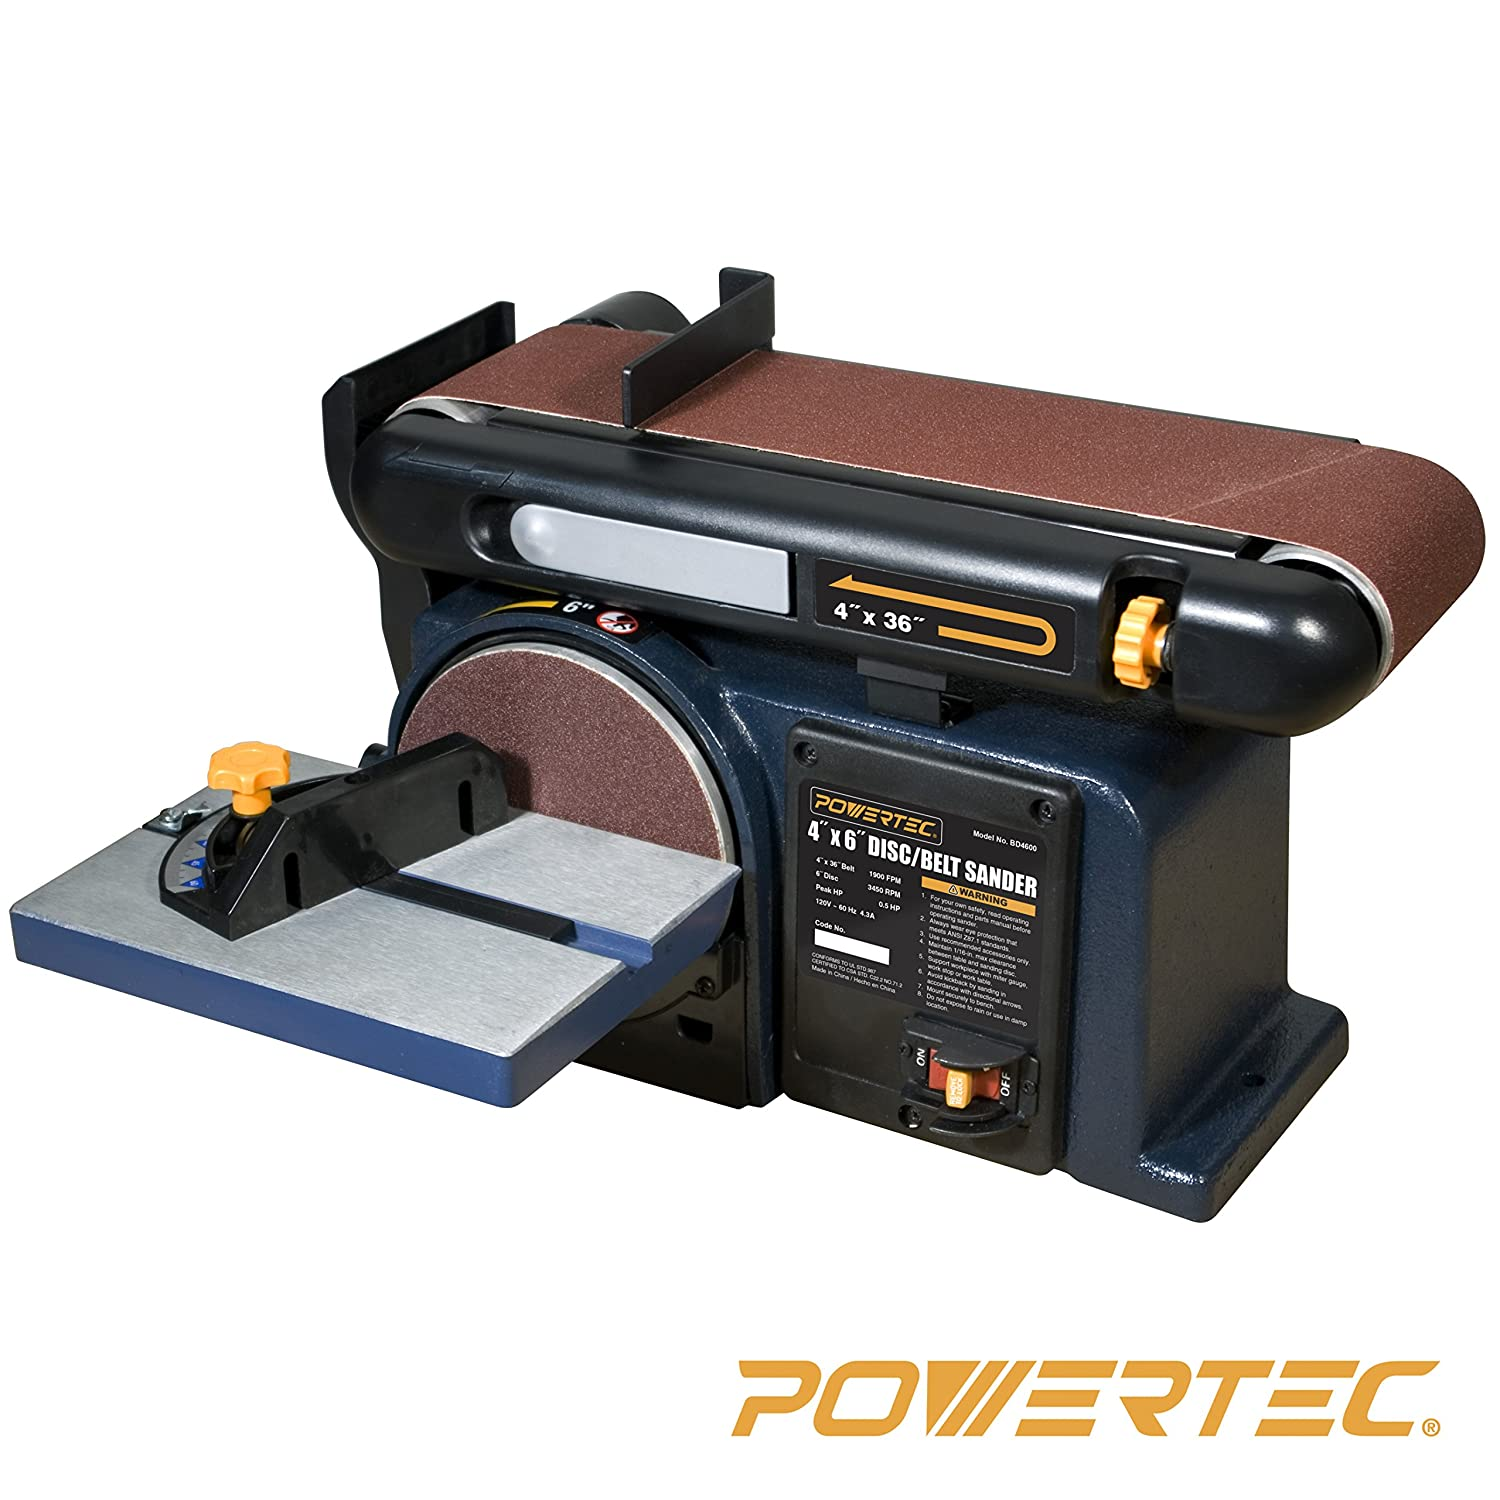 POWERTEC BD4600 featured image